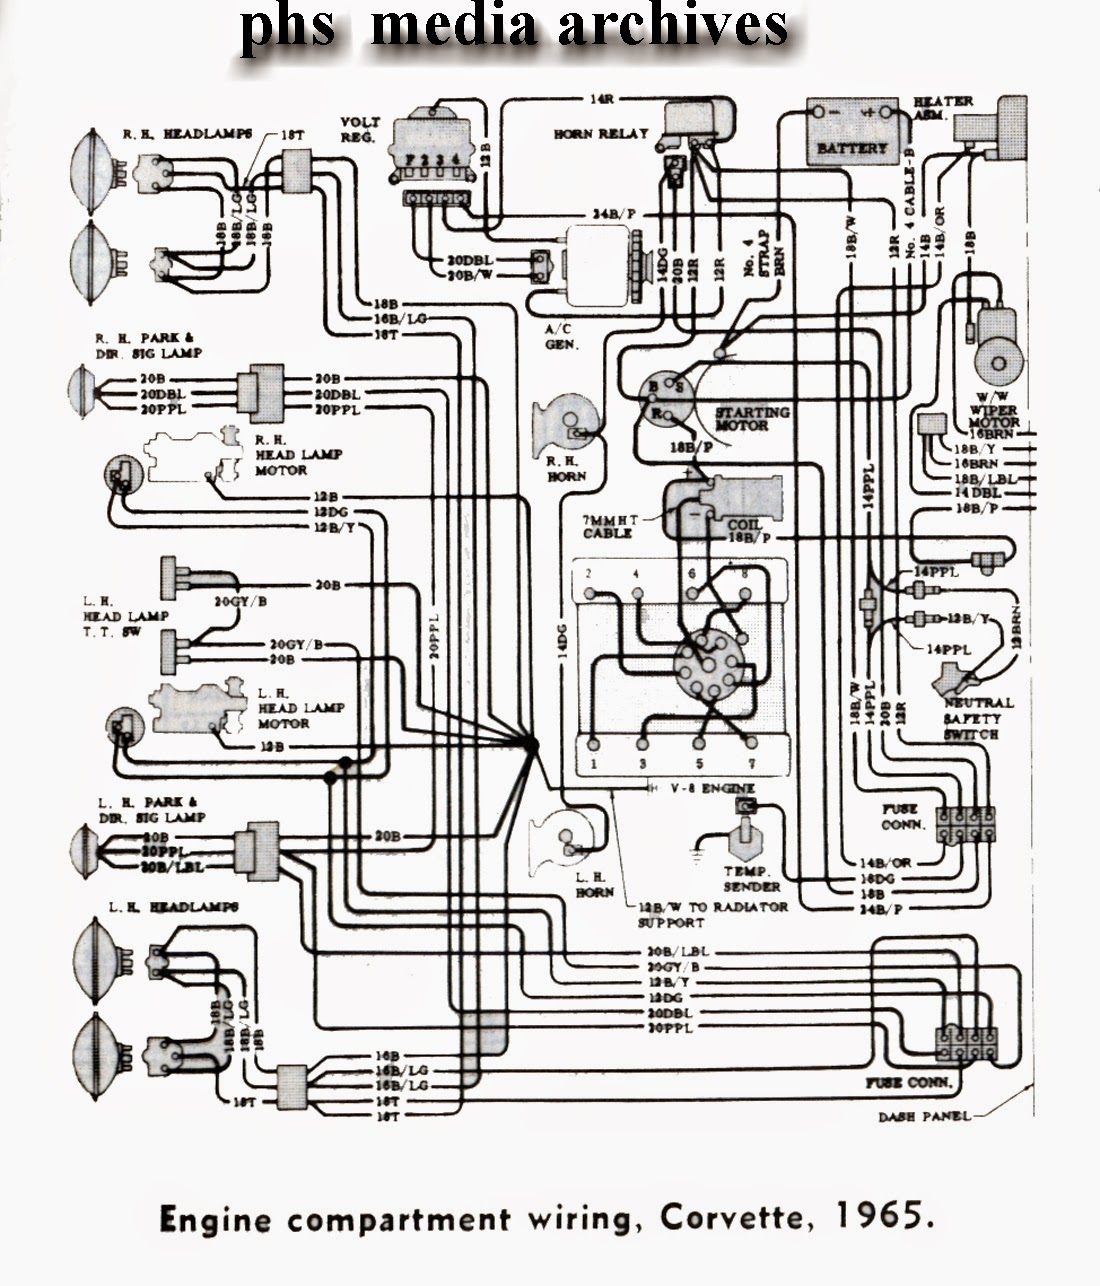 67 Camaro Headlight Wiring Harness Schematic | 1967 Camaro Rs ...